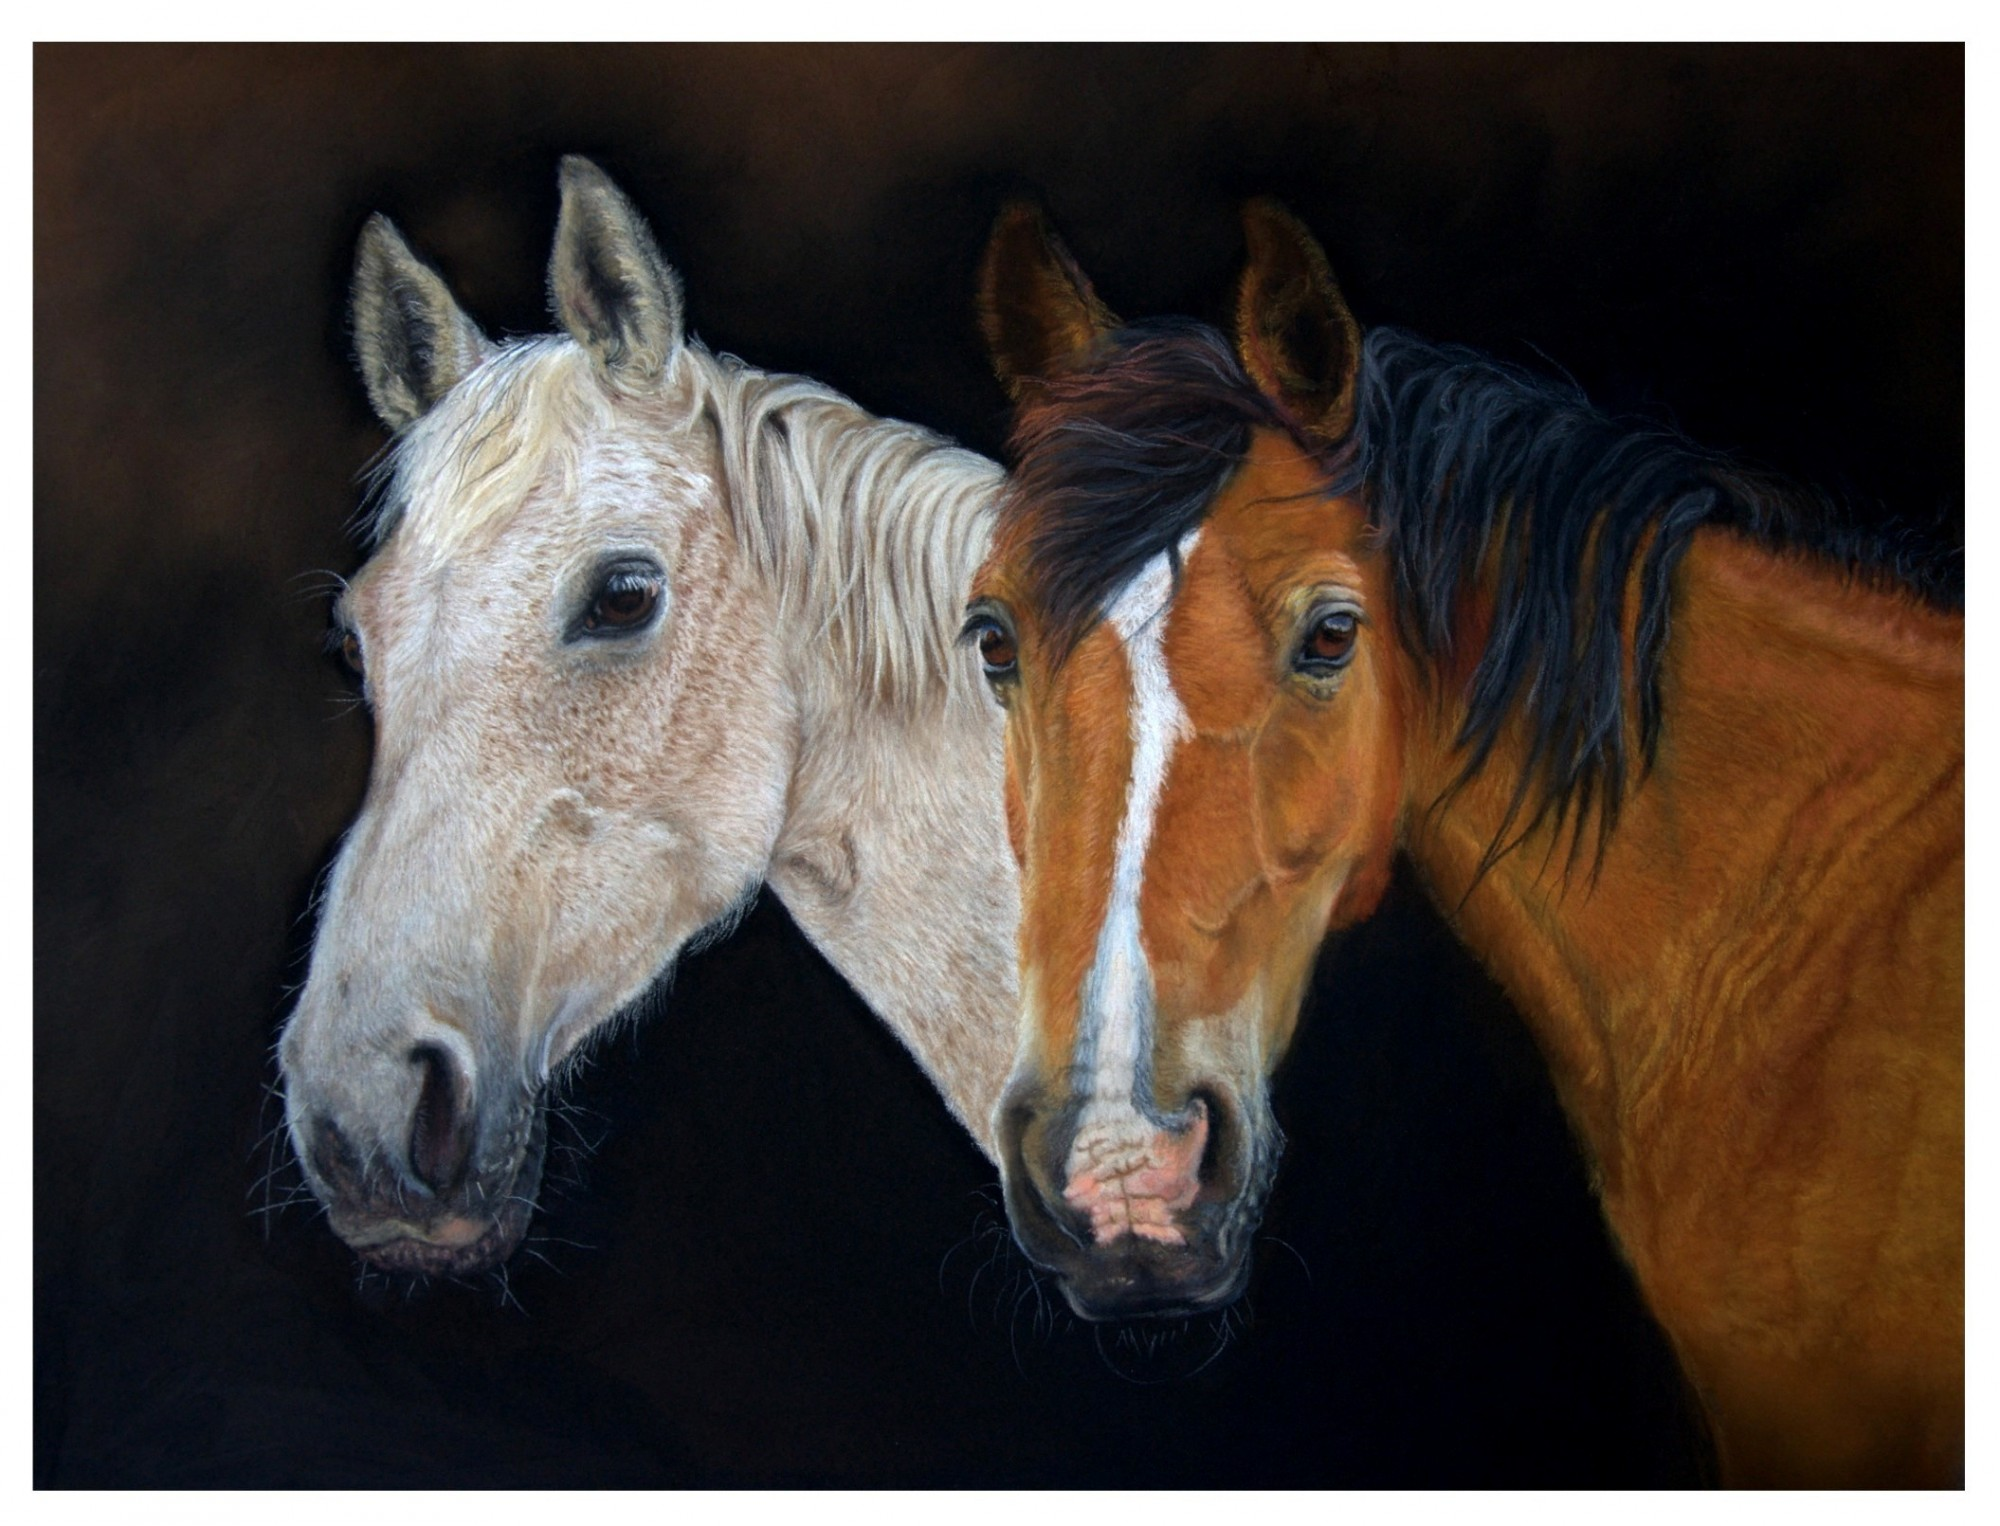 painting of two horses one grey and one chestnut